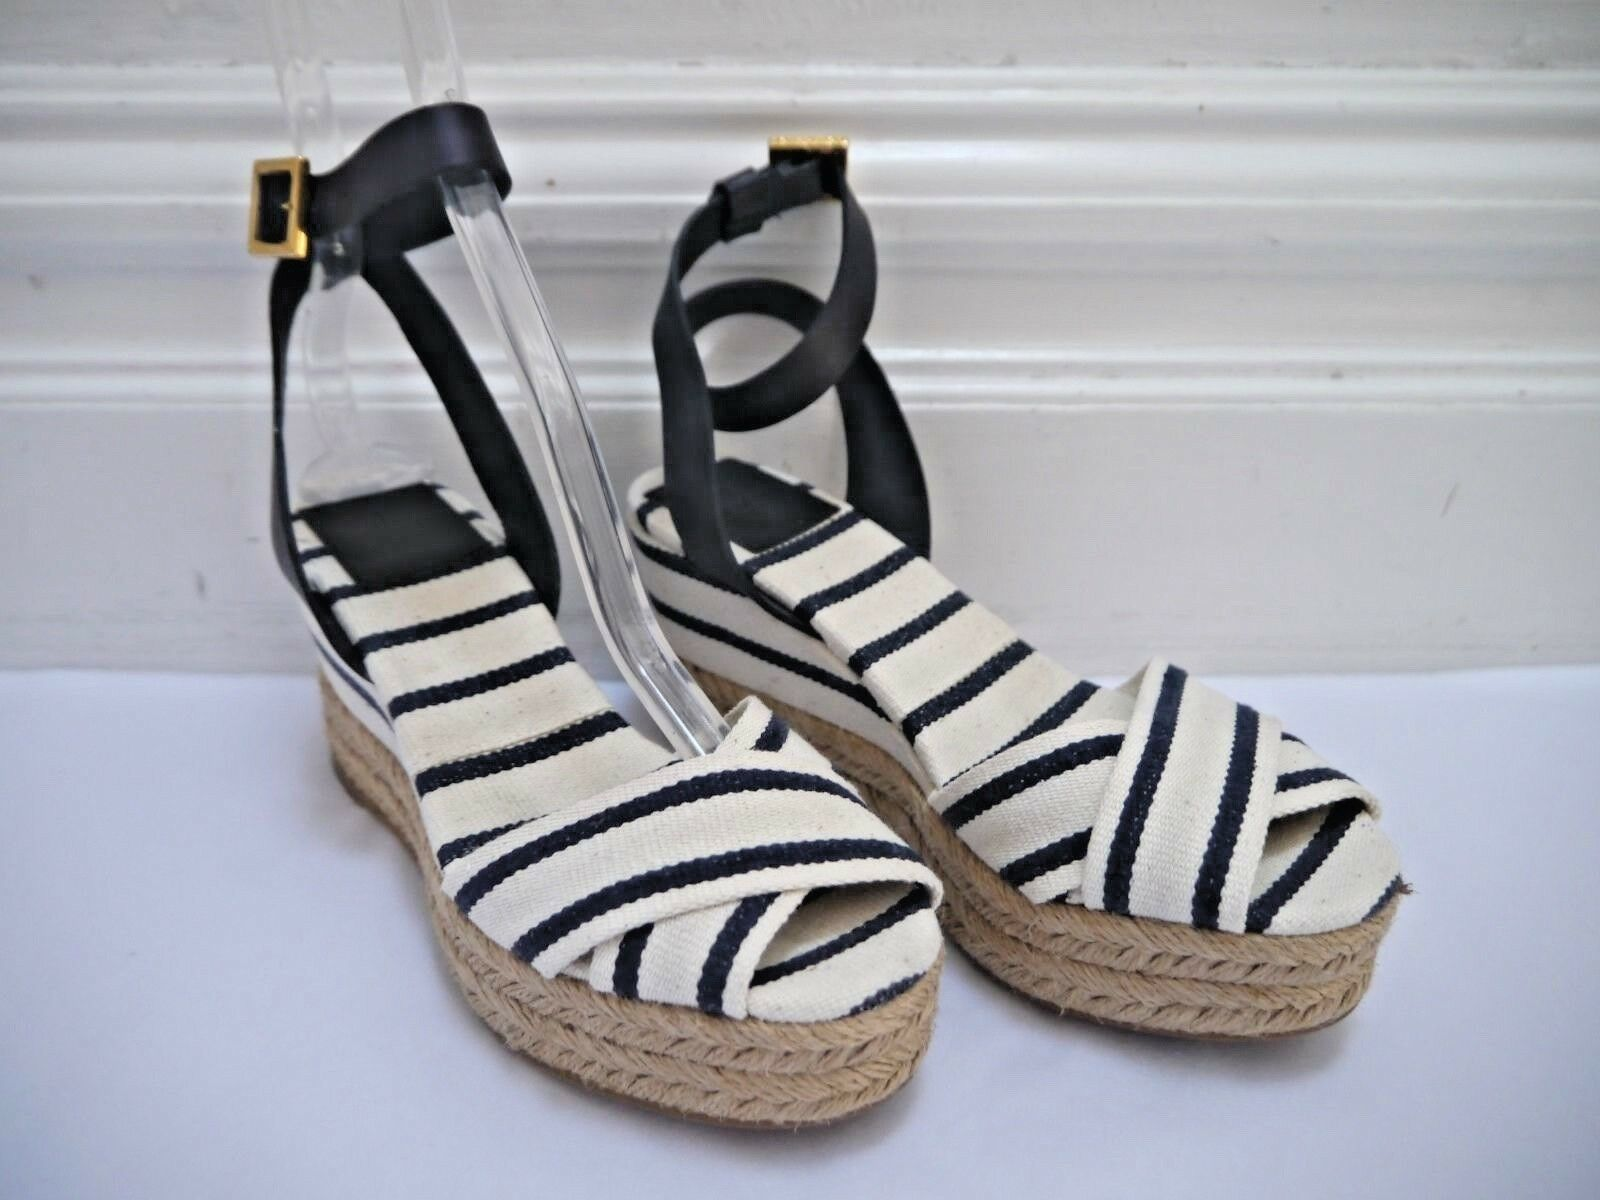 TORY BURCH Karissa canvas striped espadrille wedge sandals size 6 WORN ONCE